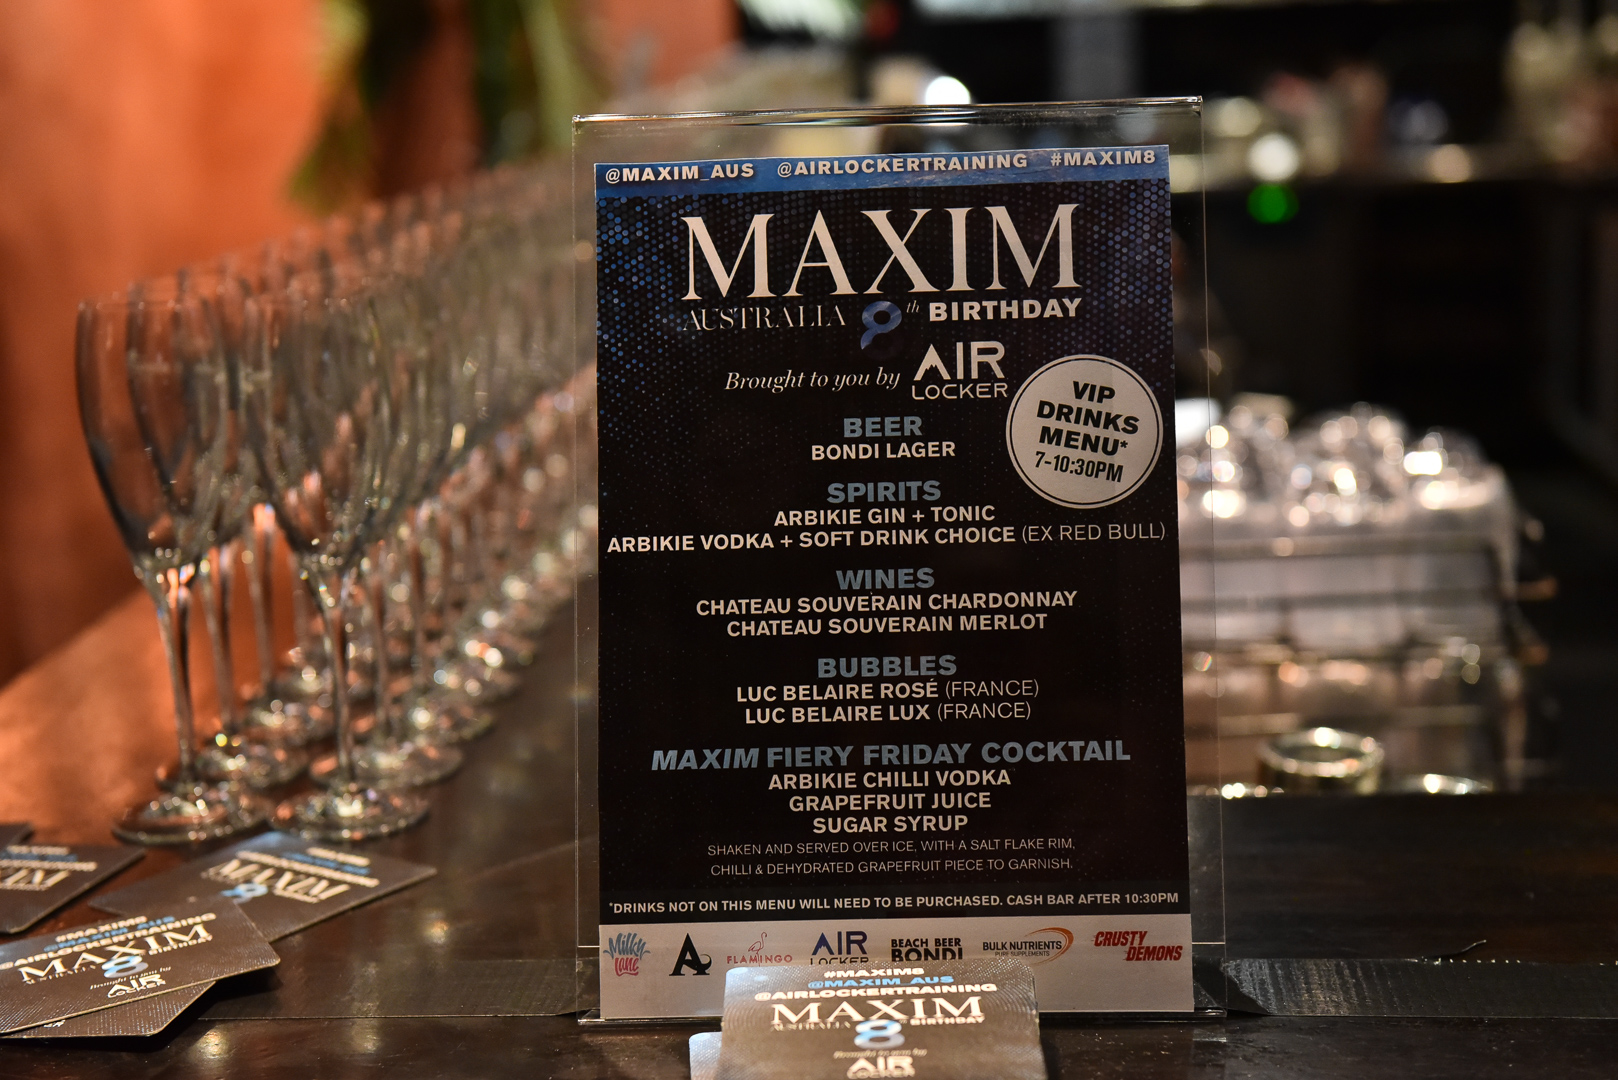 MAXIM_Australia_8th Birthday_2